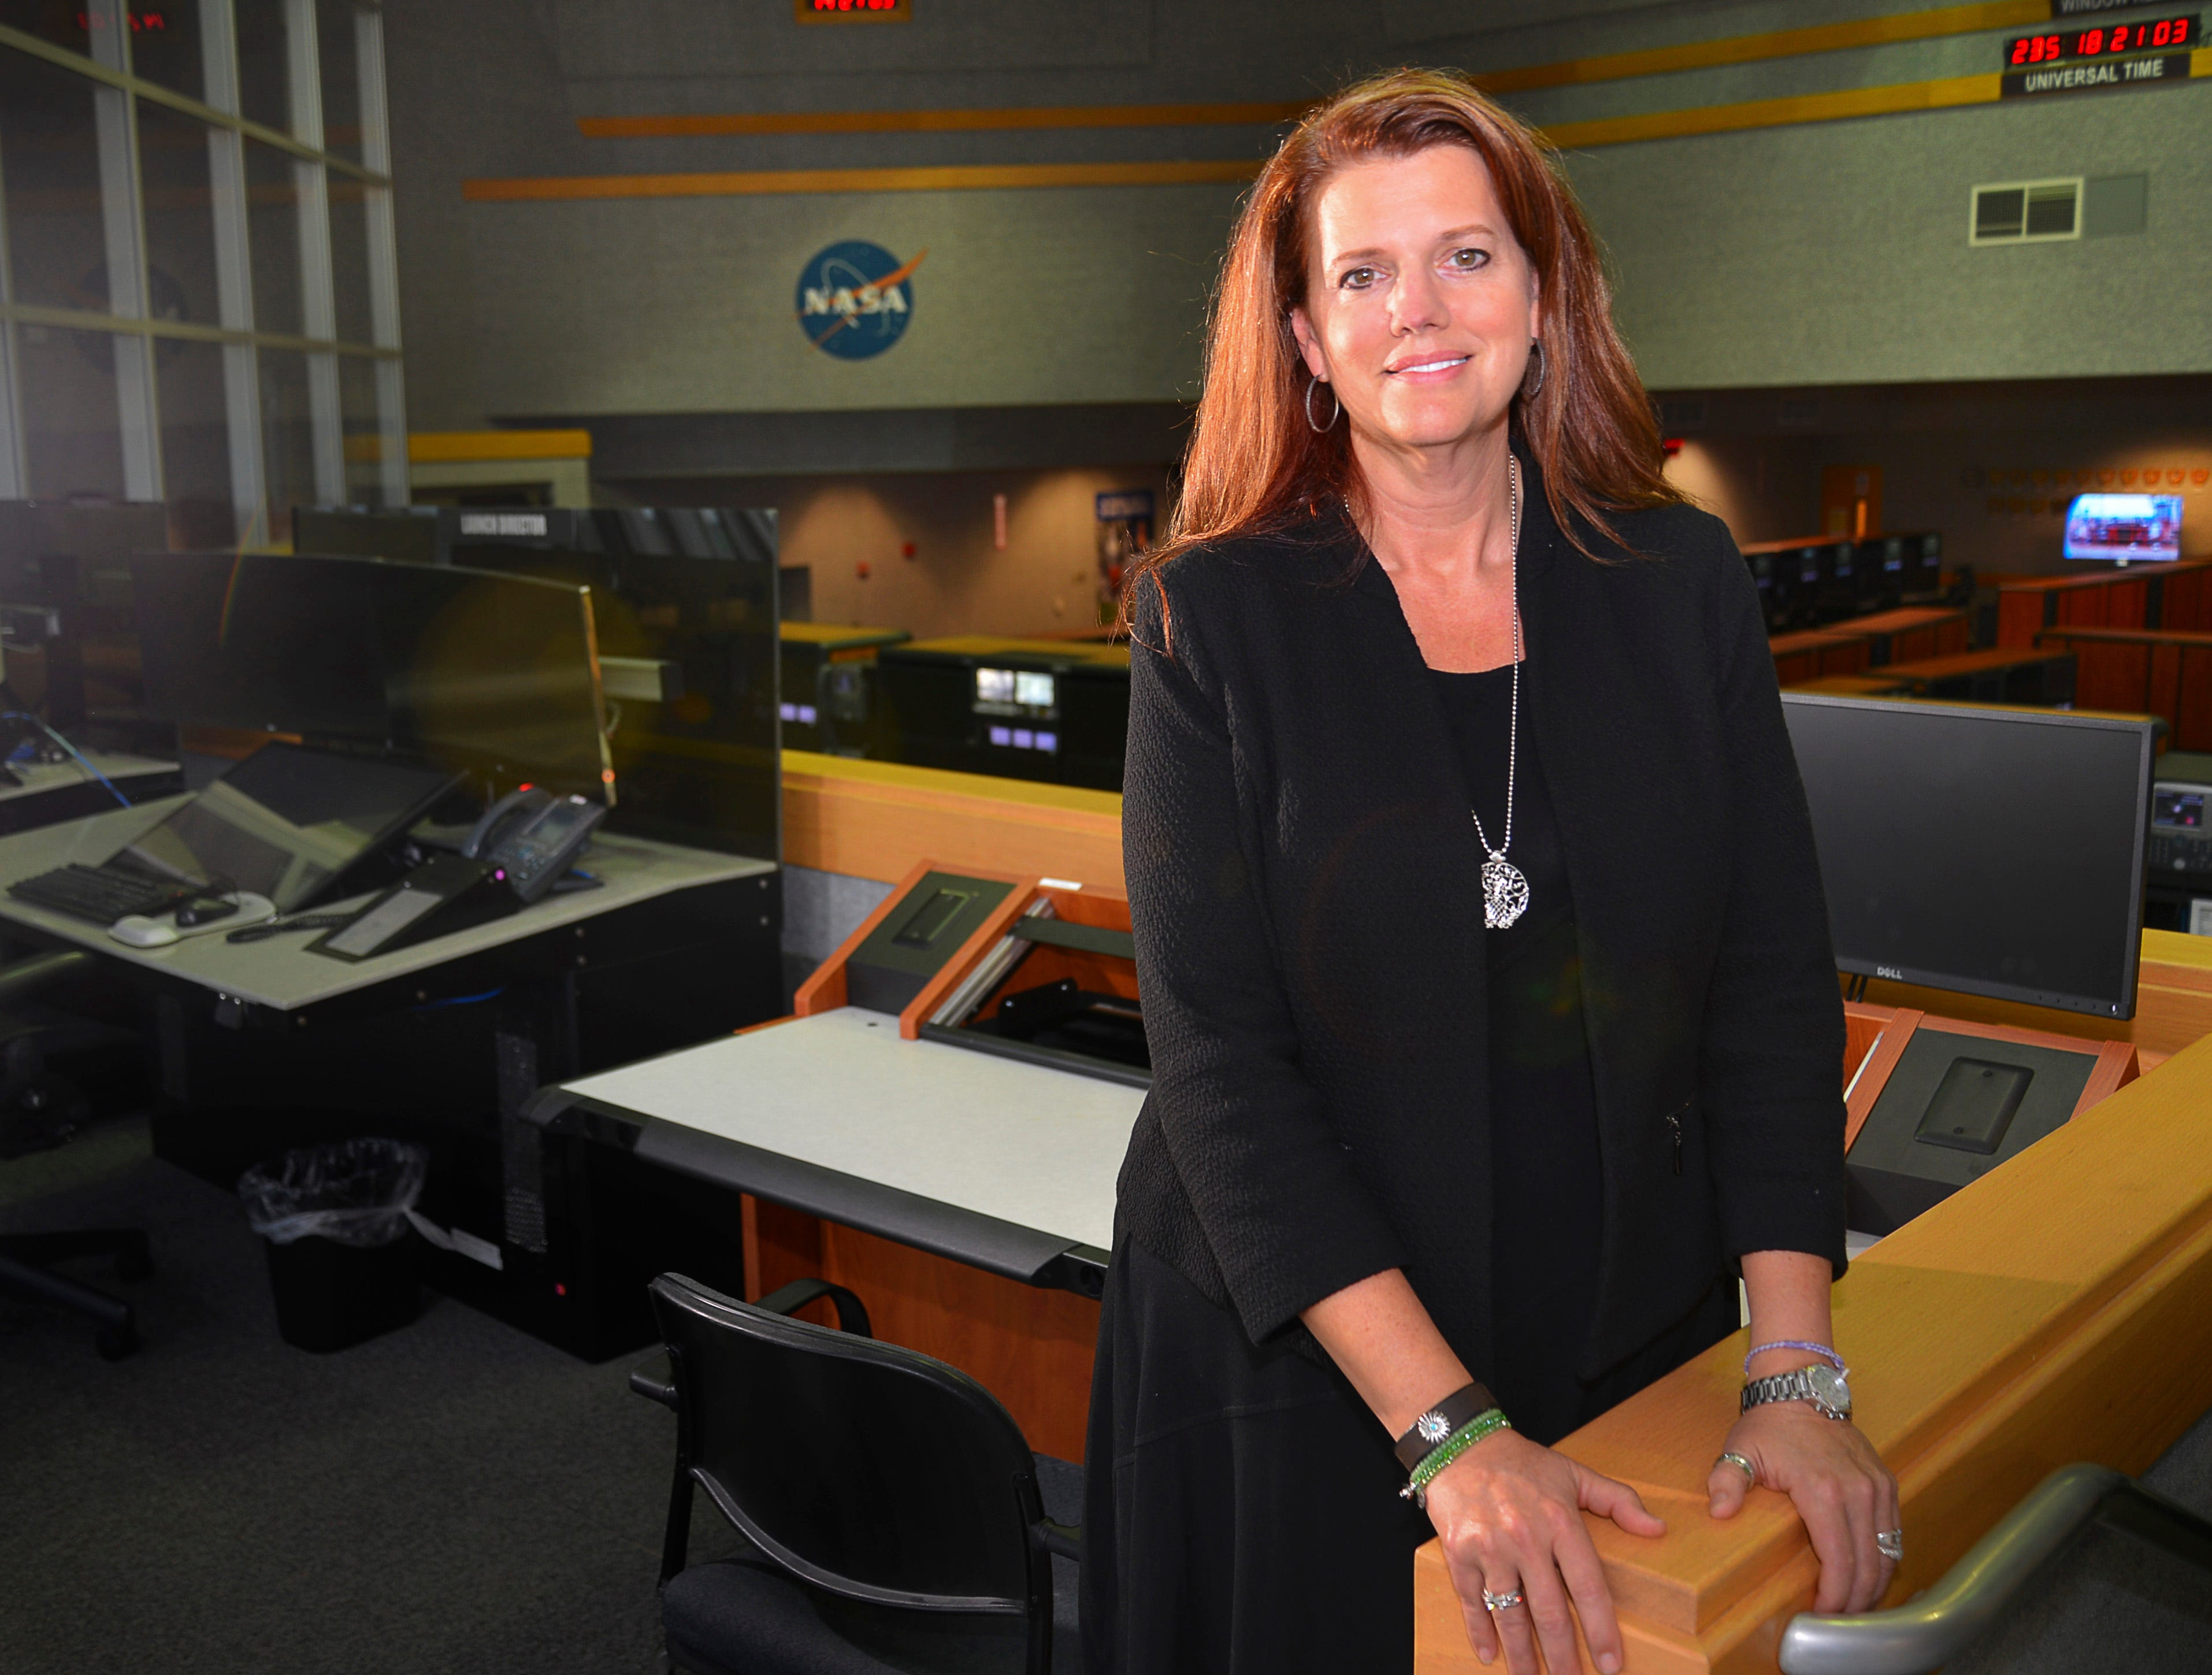 Breaking news: NASA's first female launch director to lead countdowns during Artemis missions to the moon